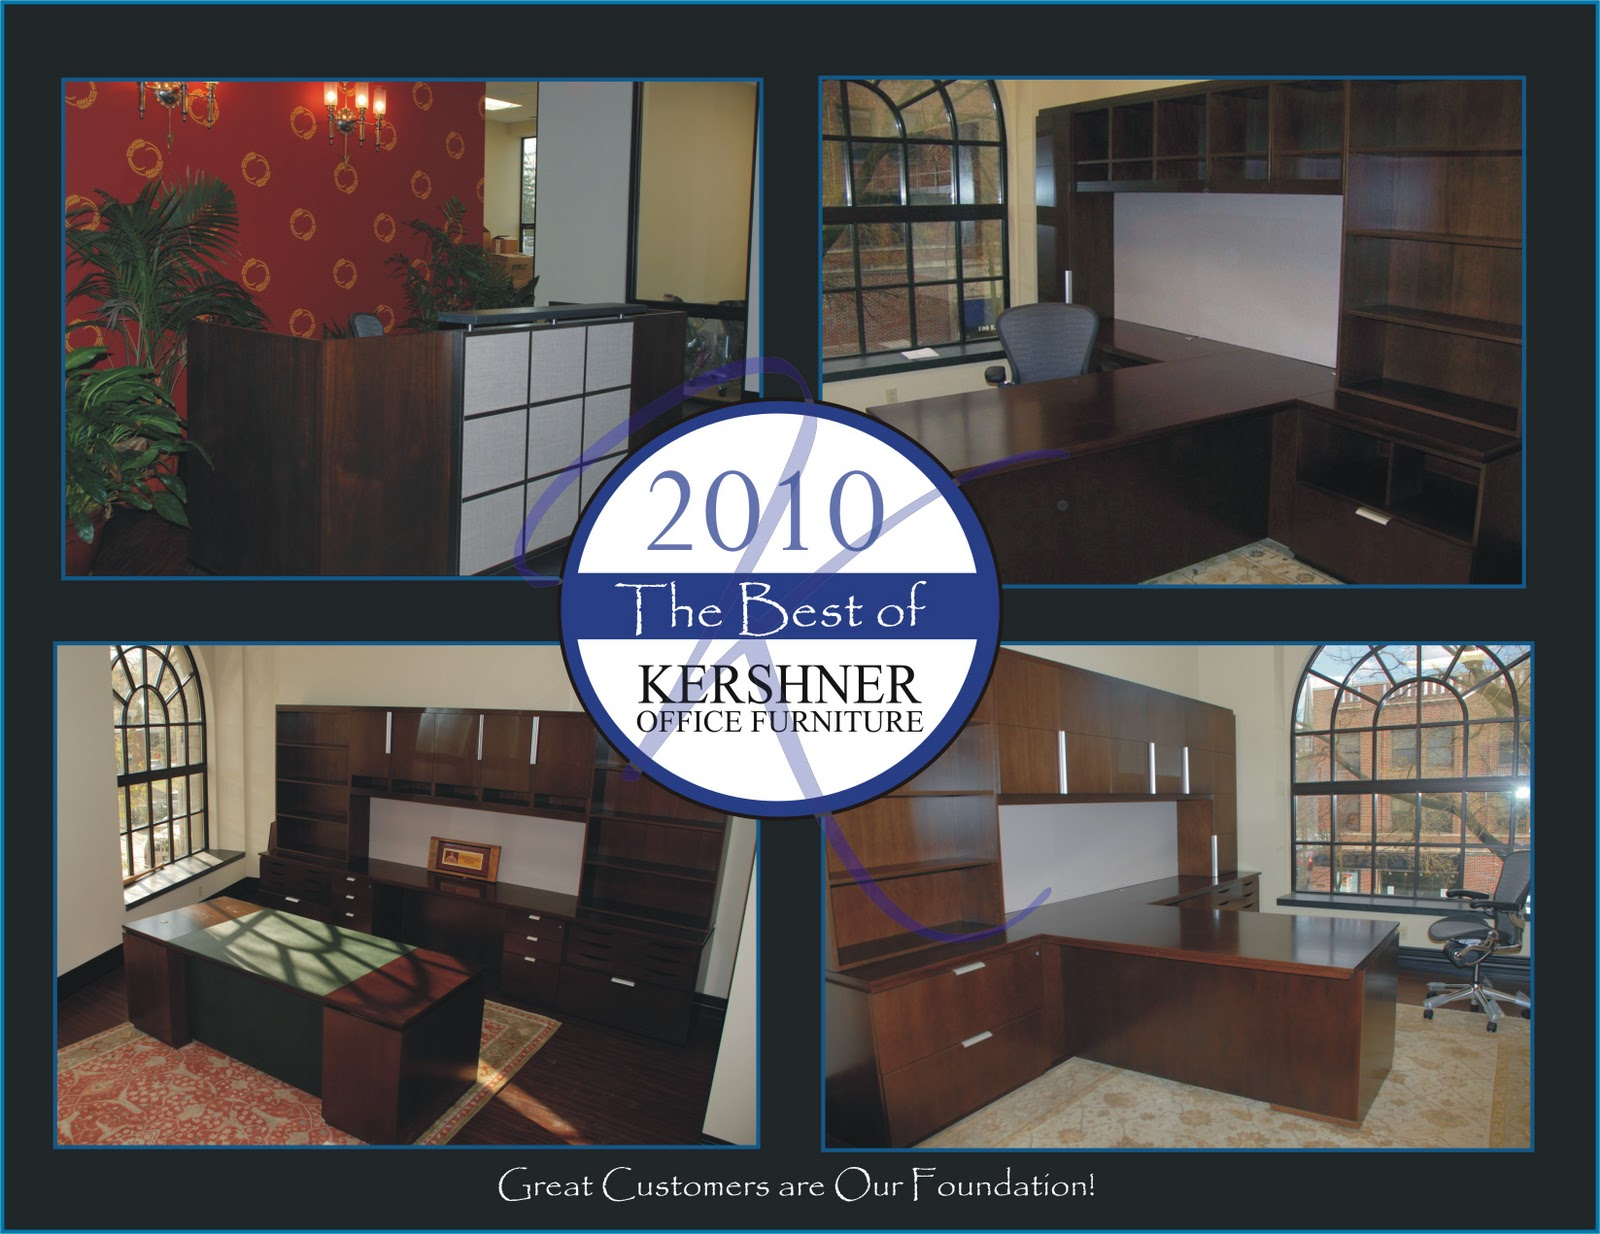 Kershner Office Furniture Great Customers Are Our Foundation